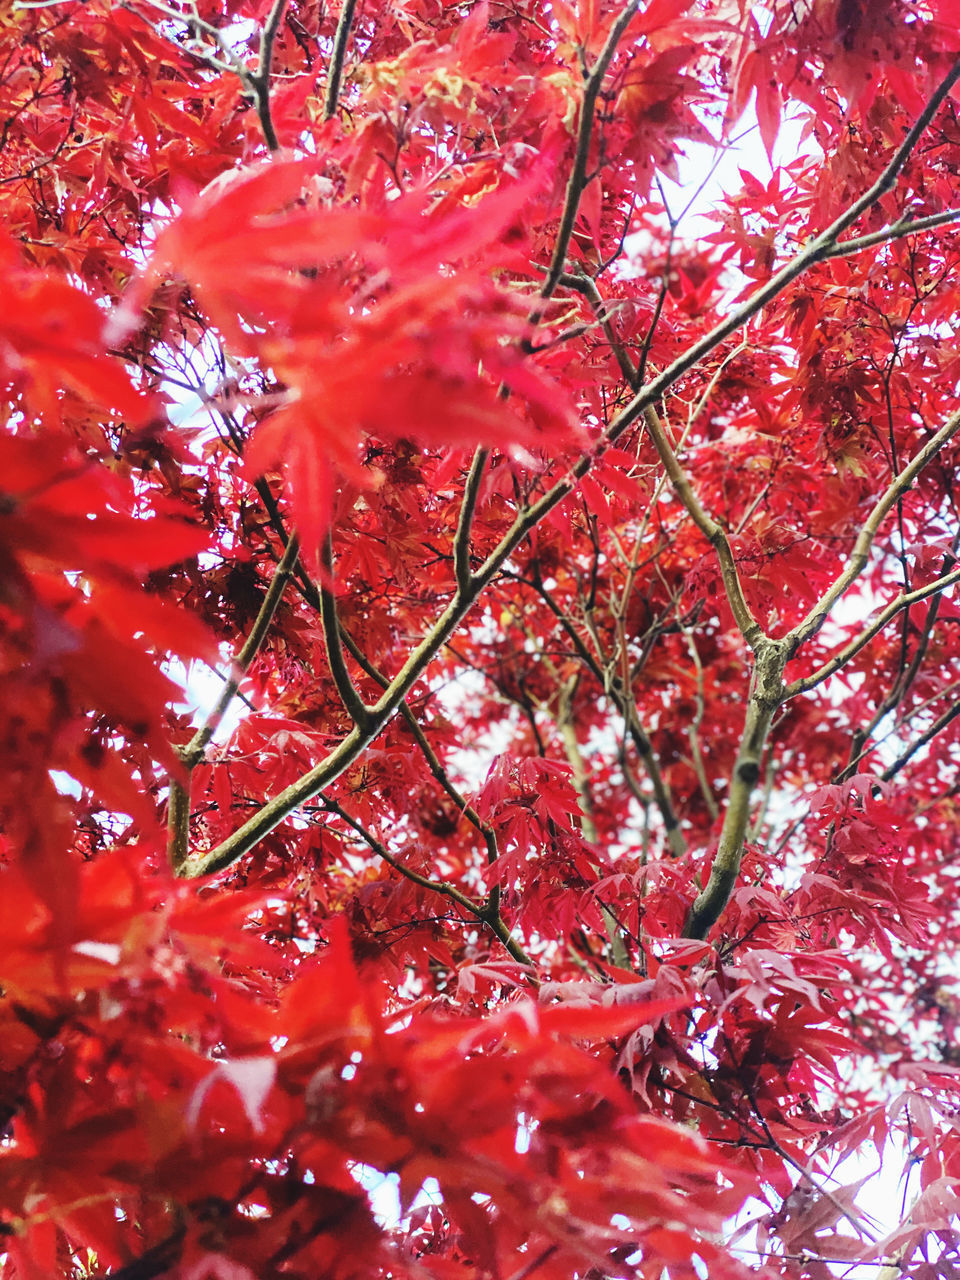 FULL FRAME SHOT OF RED FLOWERING TREE